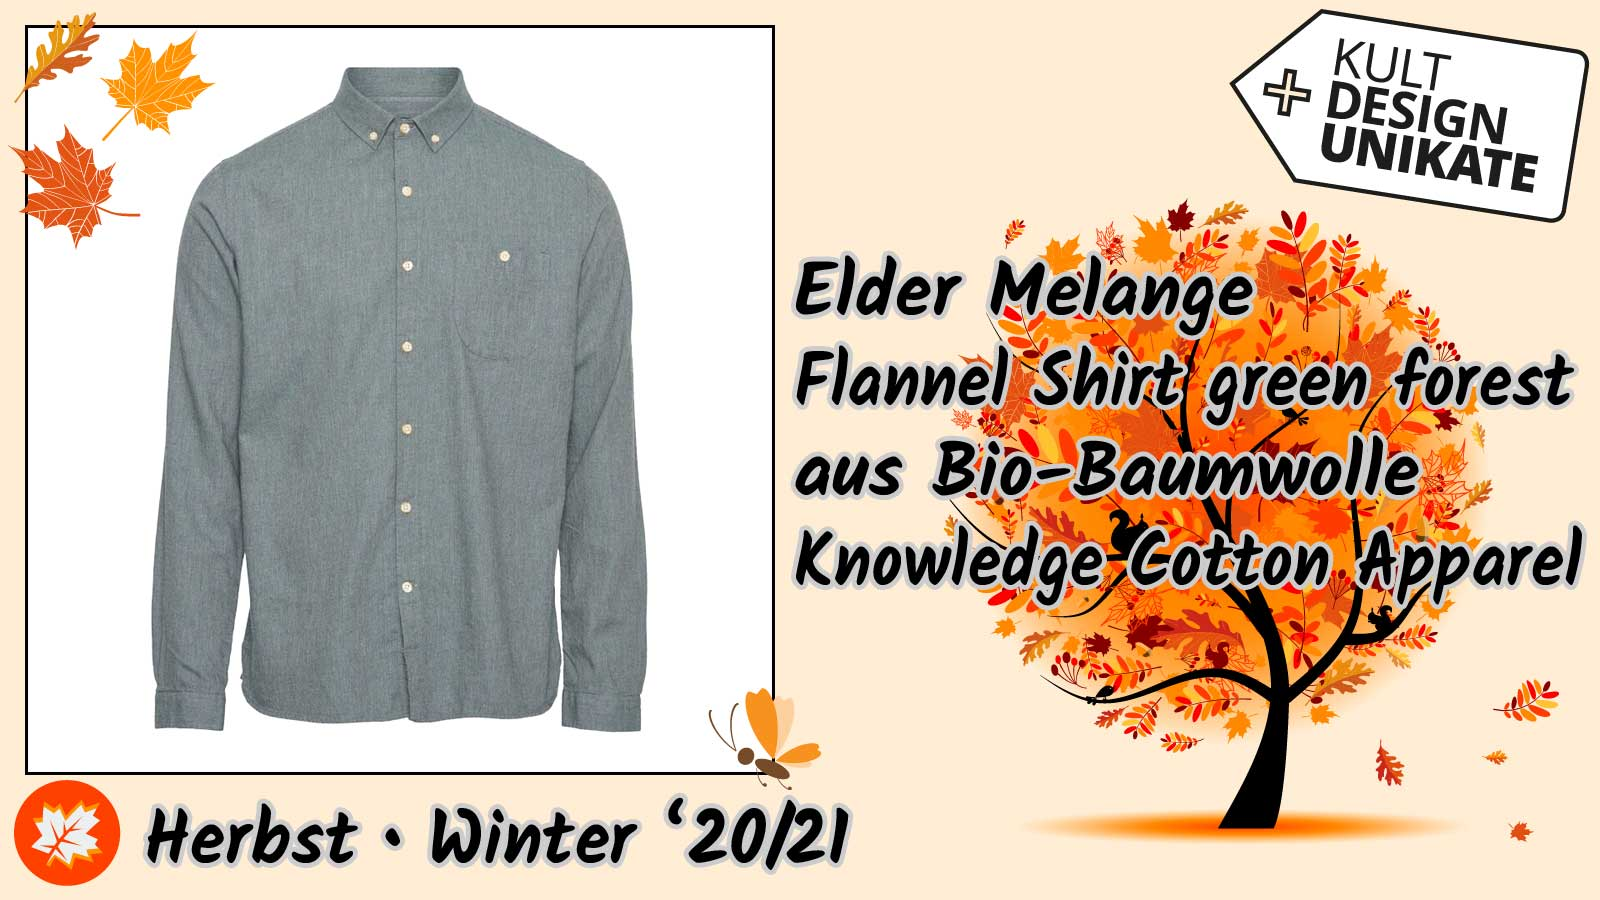 KCA-Elder-Melange-Flannel-Shirt-green-forest